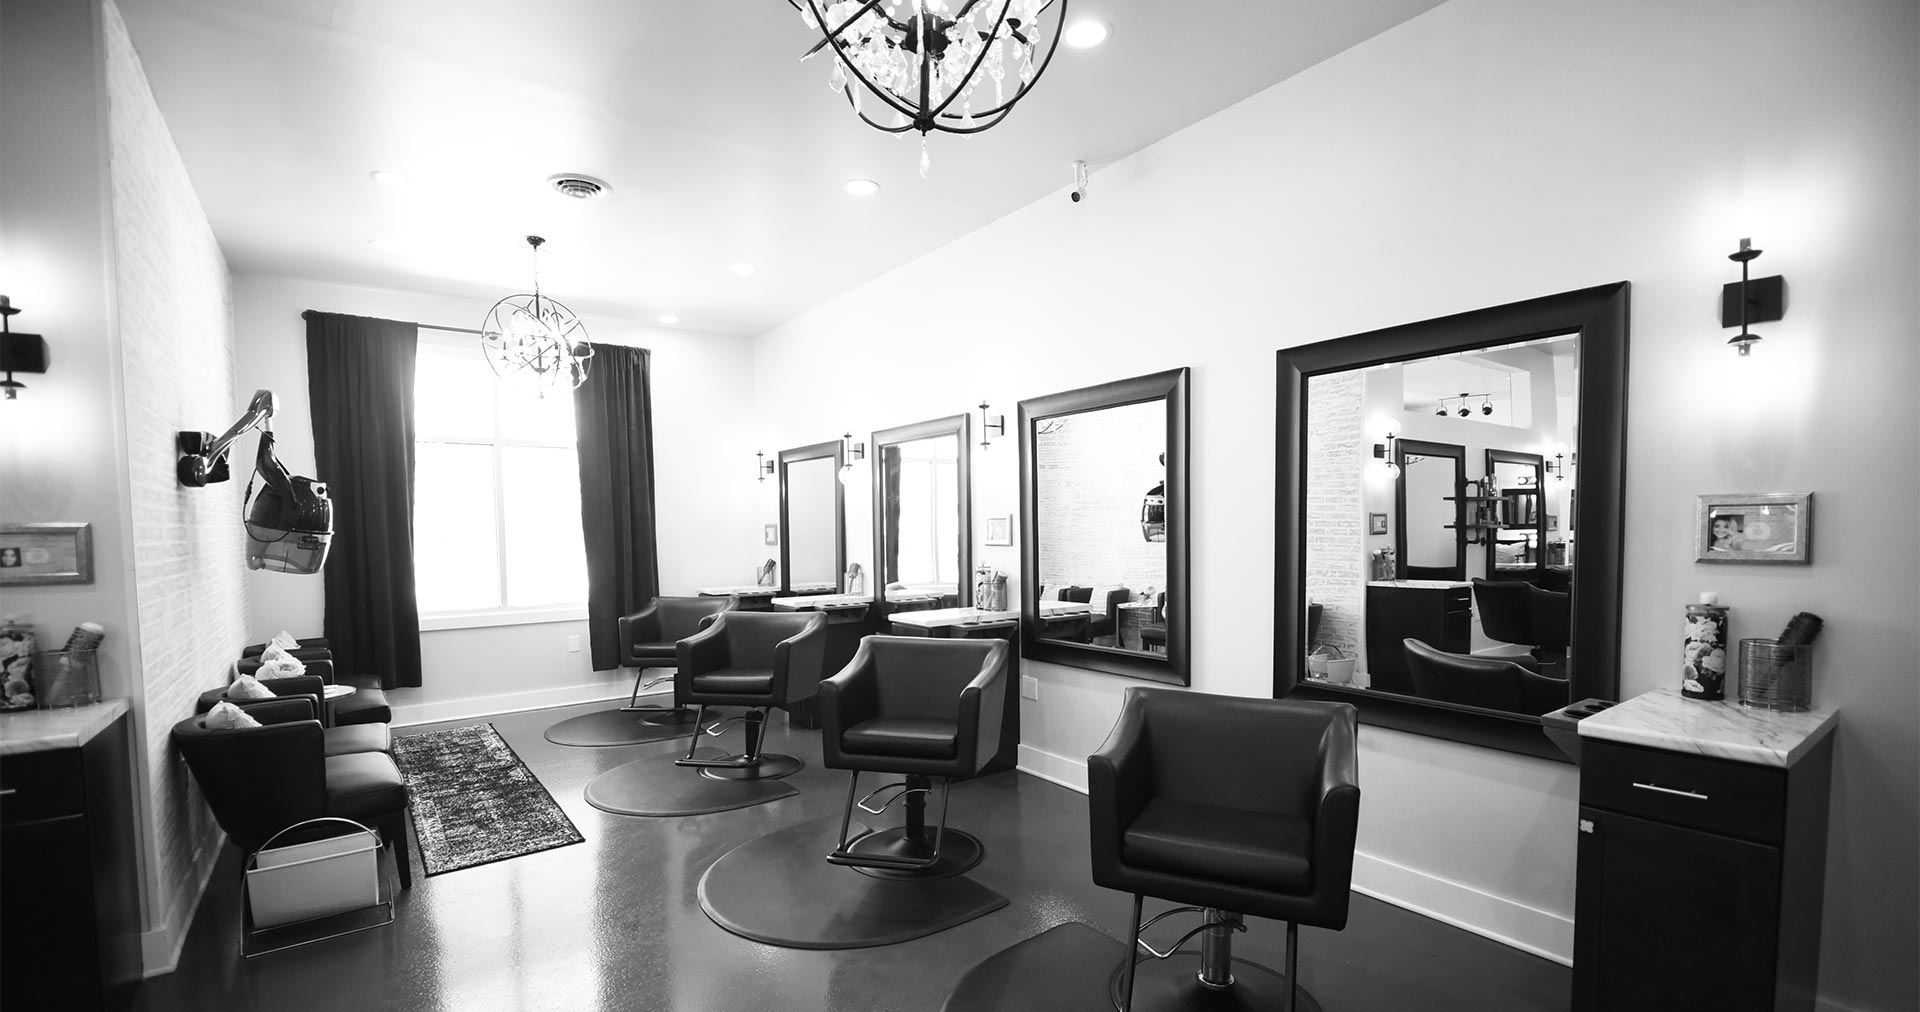 J & C Beauty Bar and Salon Latham